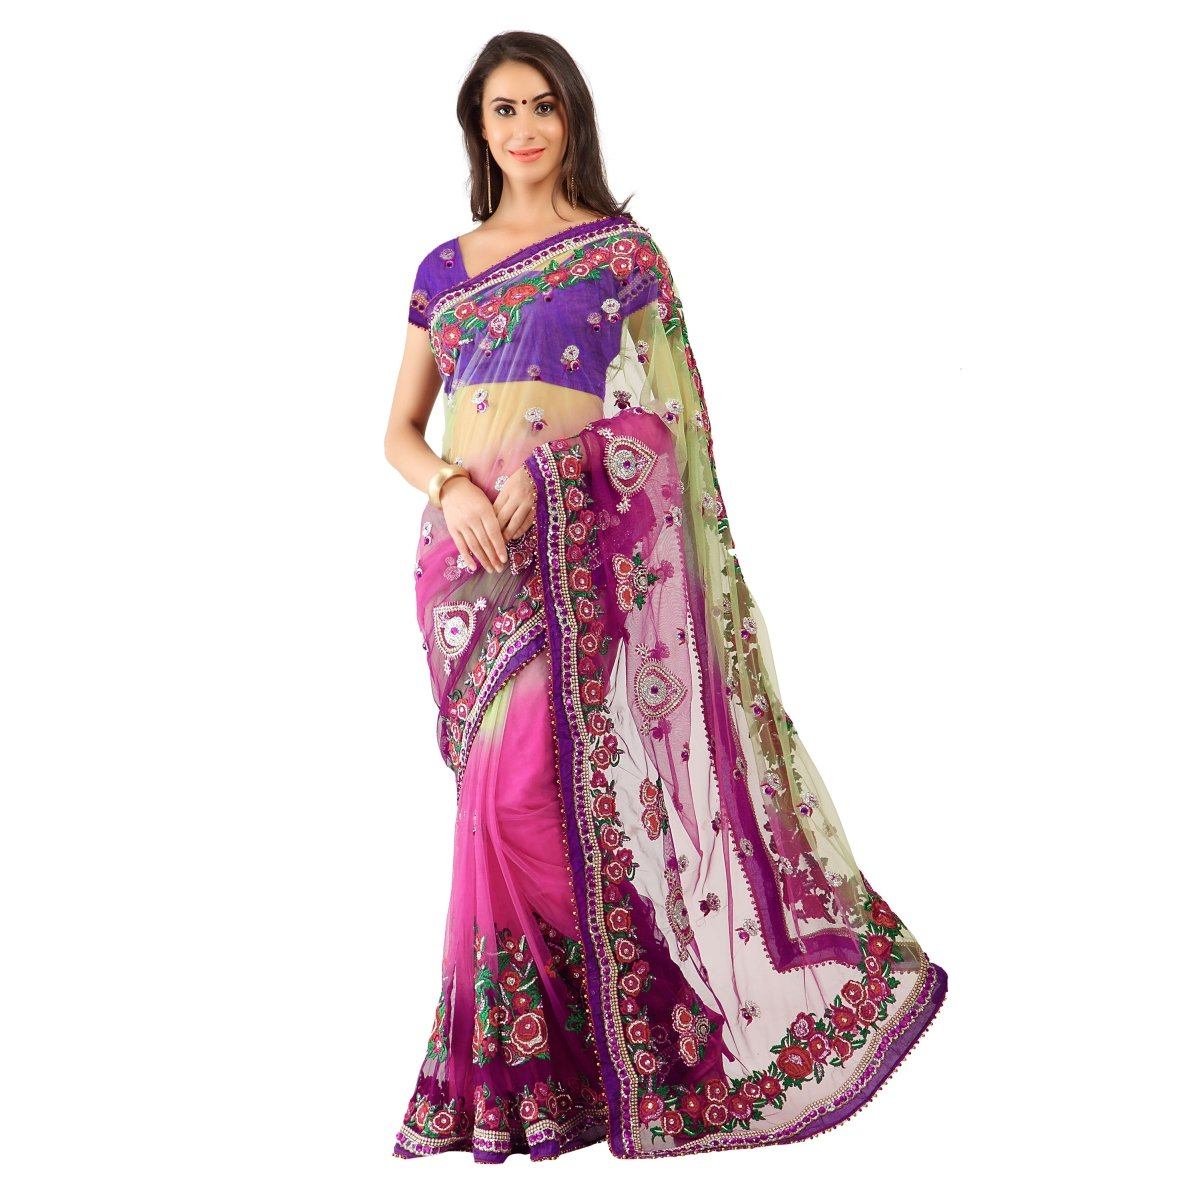 Triveni Women's Indian Pink Net Embroidered Sarees